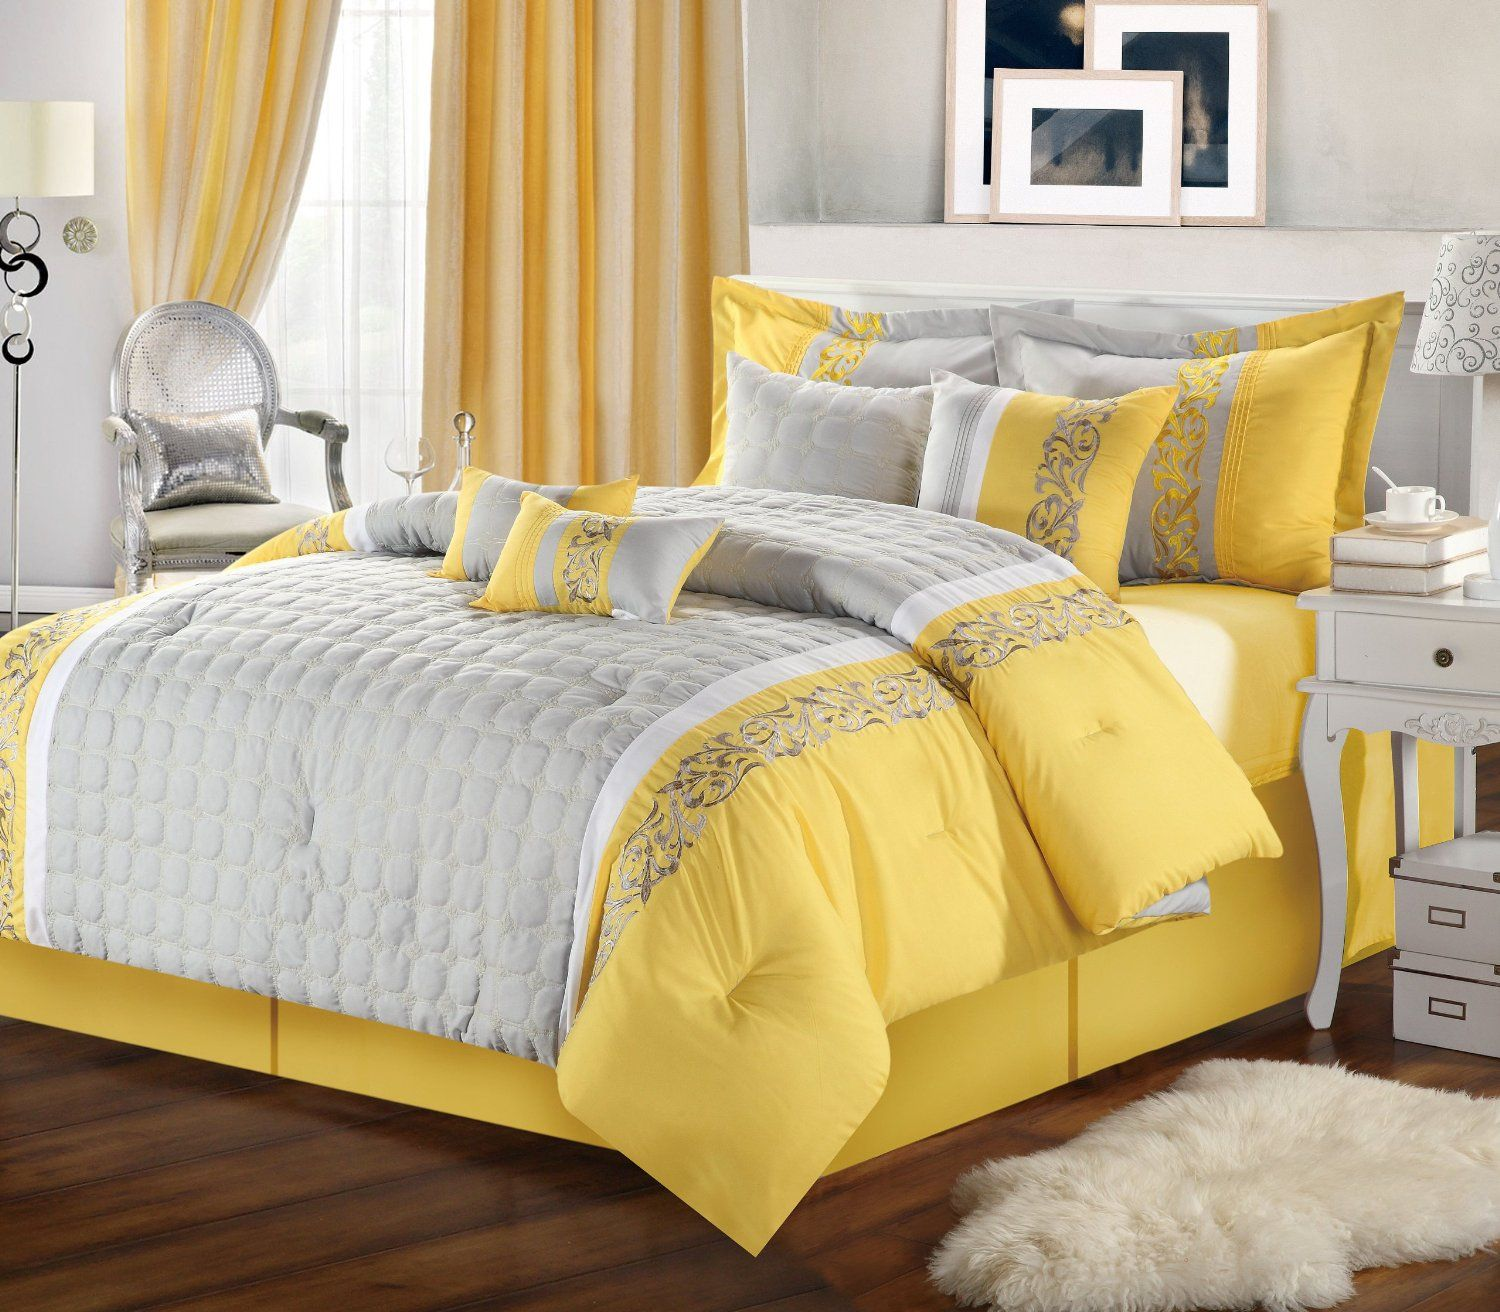 Bedroom colors yellow - Bedroom Decor